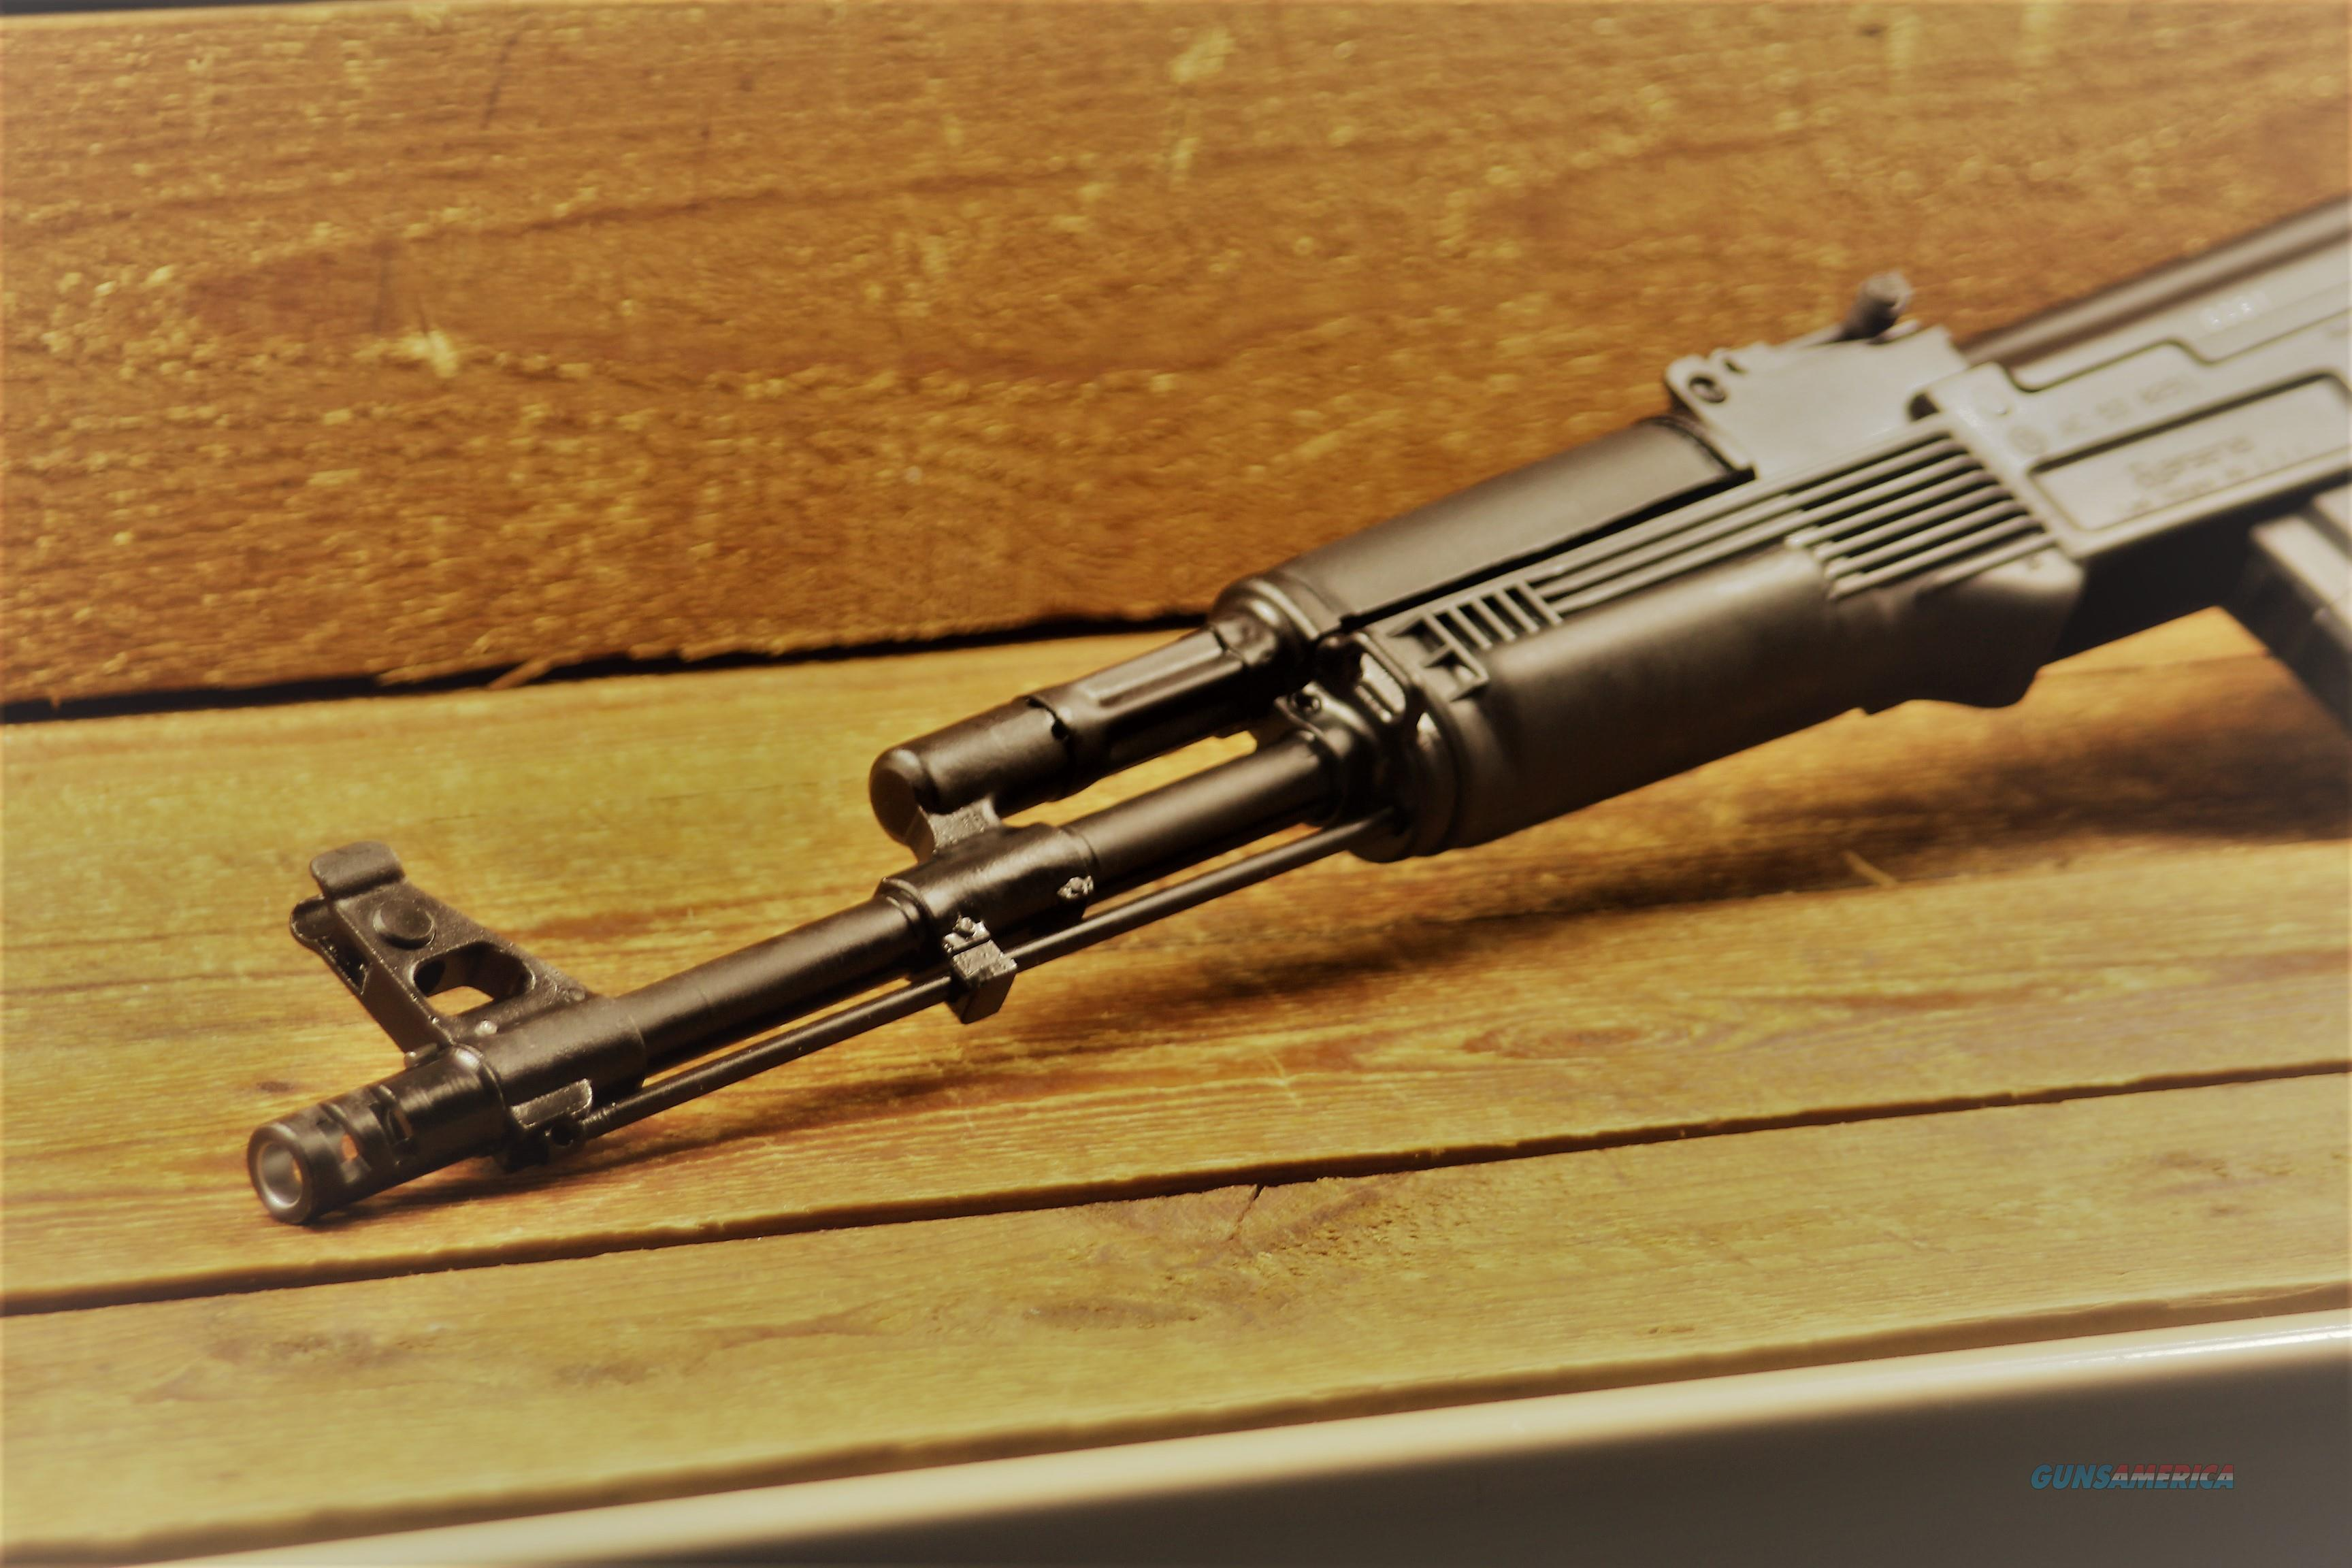 EASY PAY $78 Arsenal sturdy bayonet lug ARI milled and hot-die forged  receiver AK-47 chrome lined hammer forged 16 25 barrel RATE OF TWIST  1:9 44